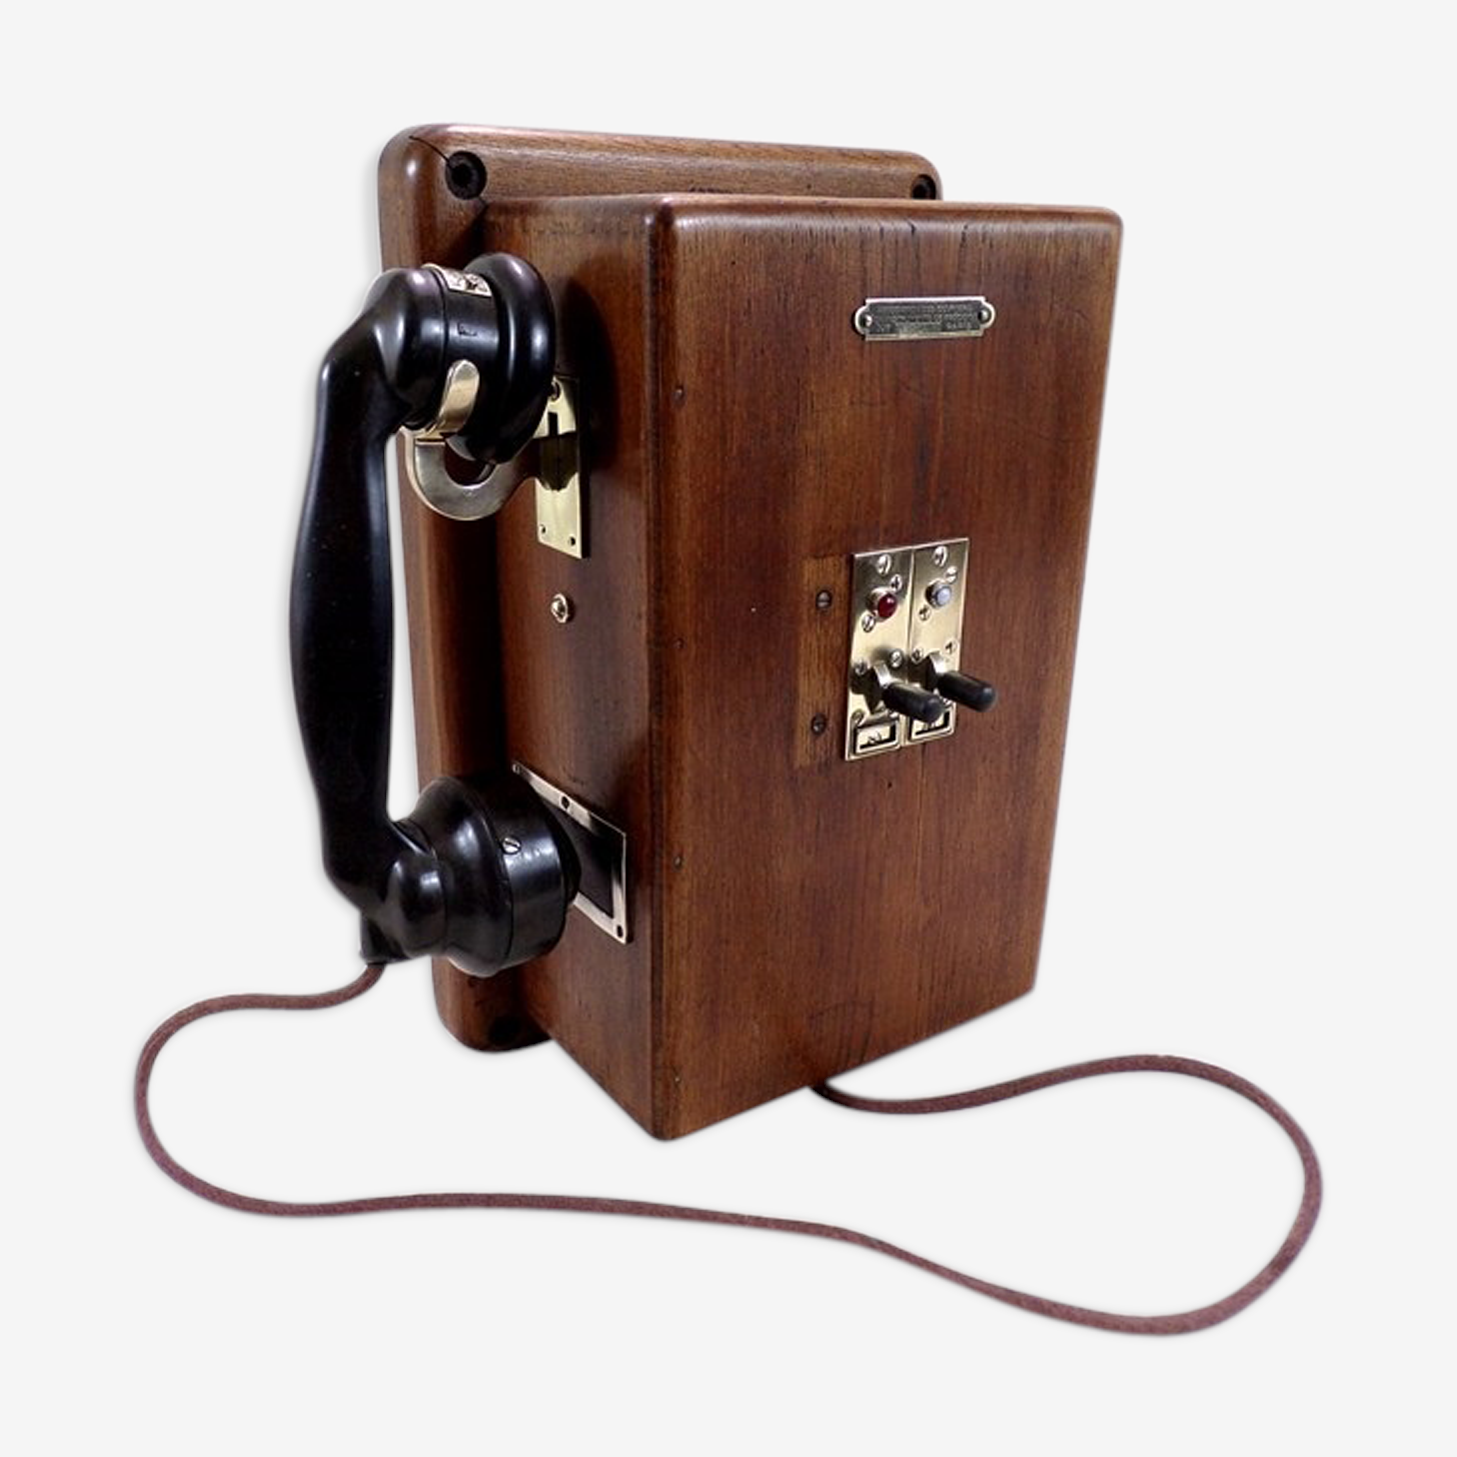 Phone old telephone standard wooden brass and metal vintage deco